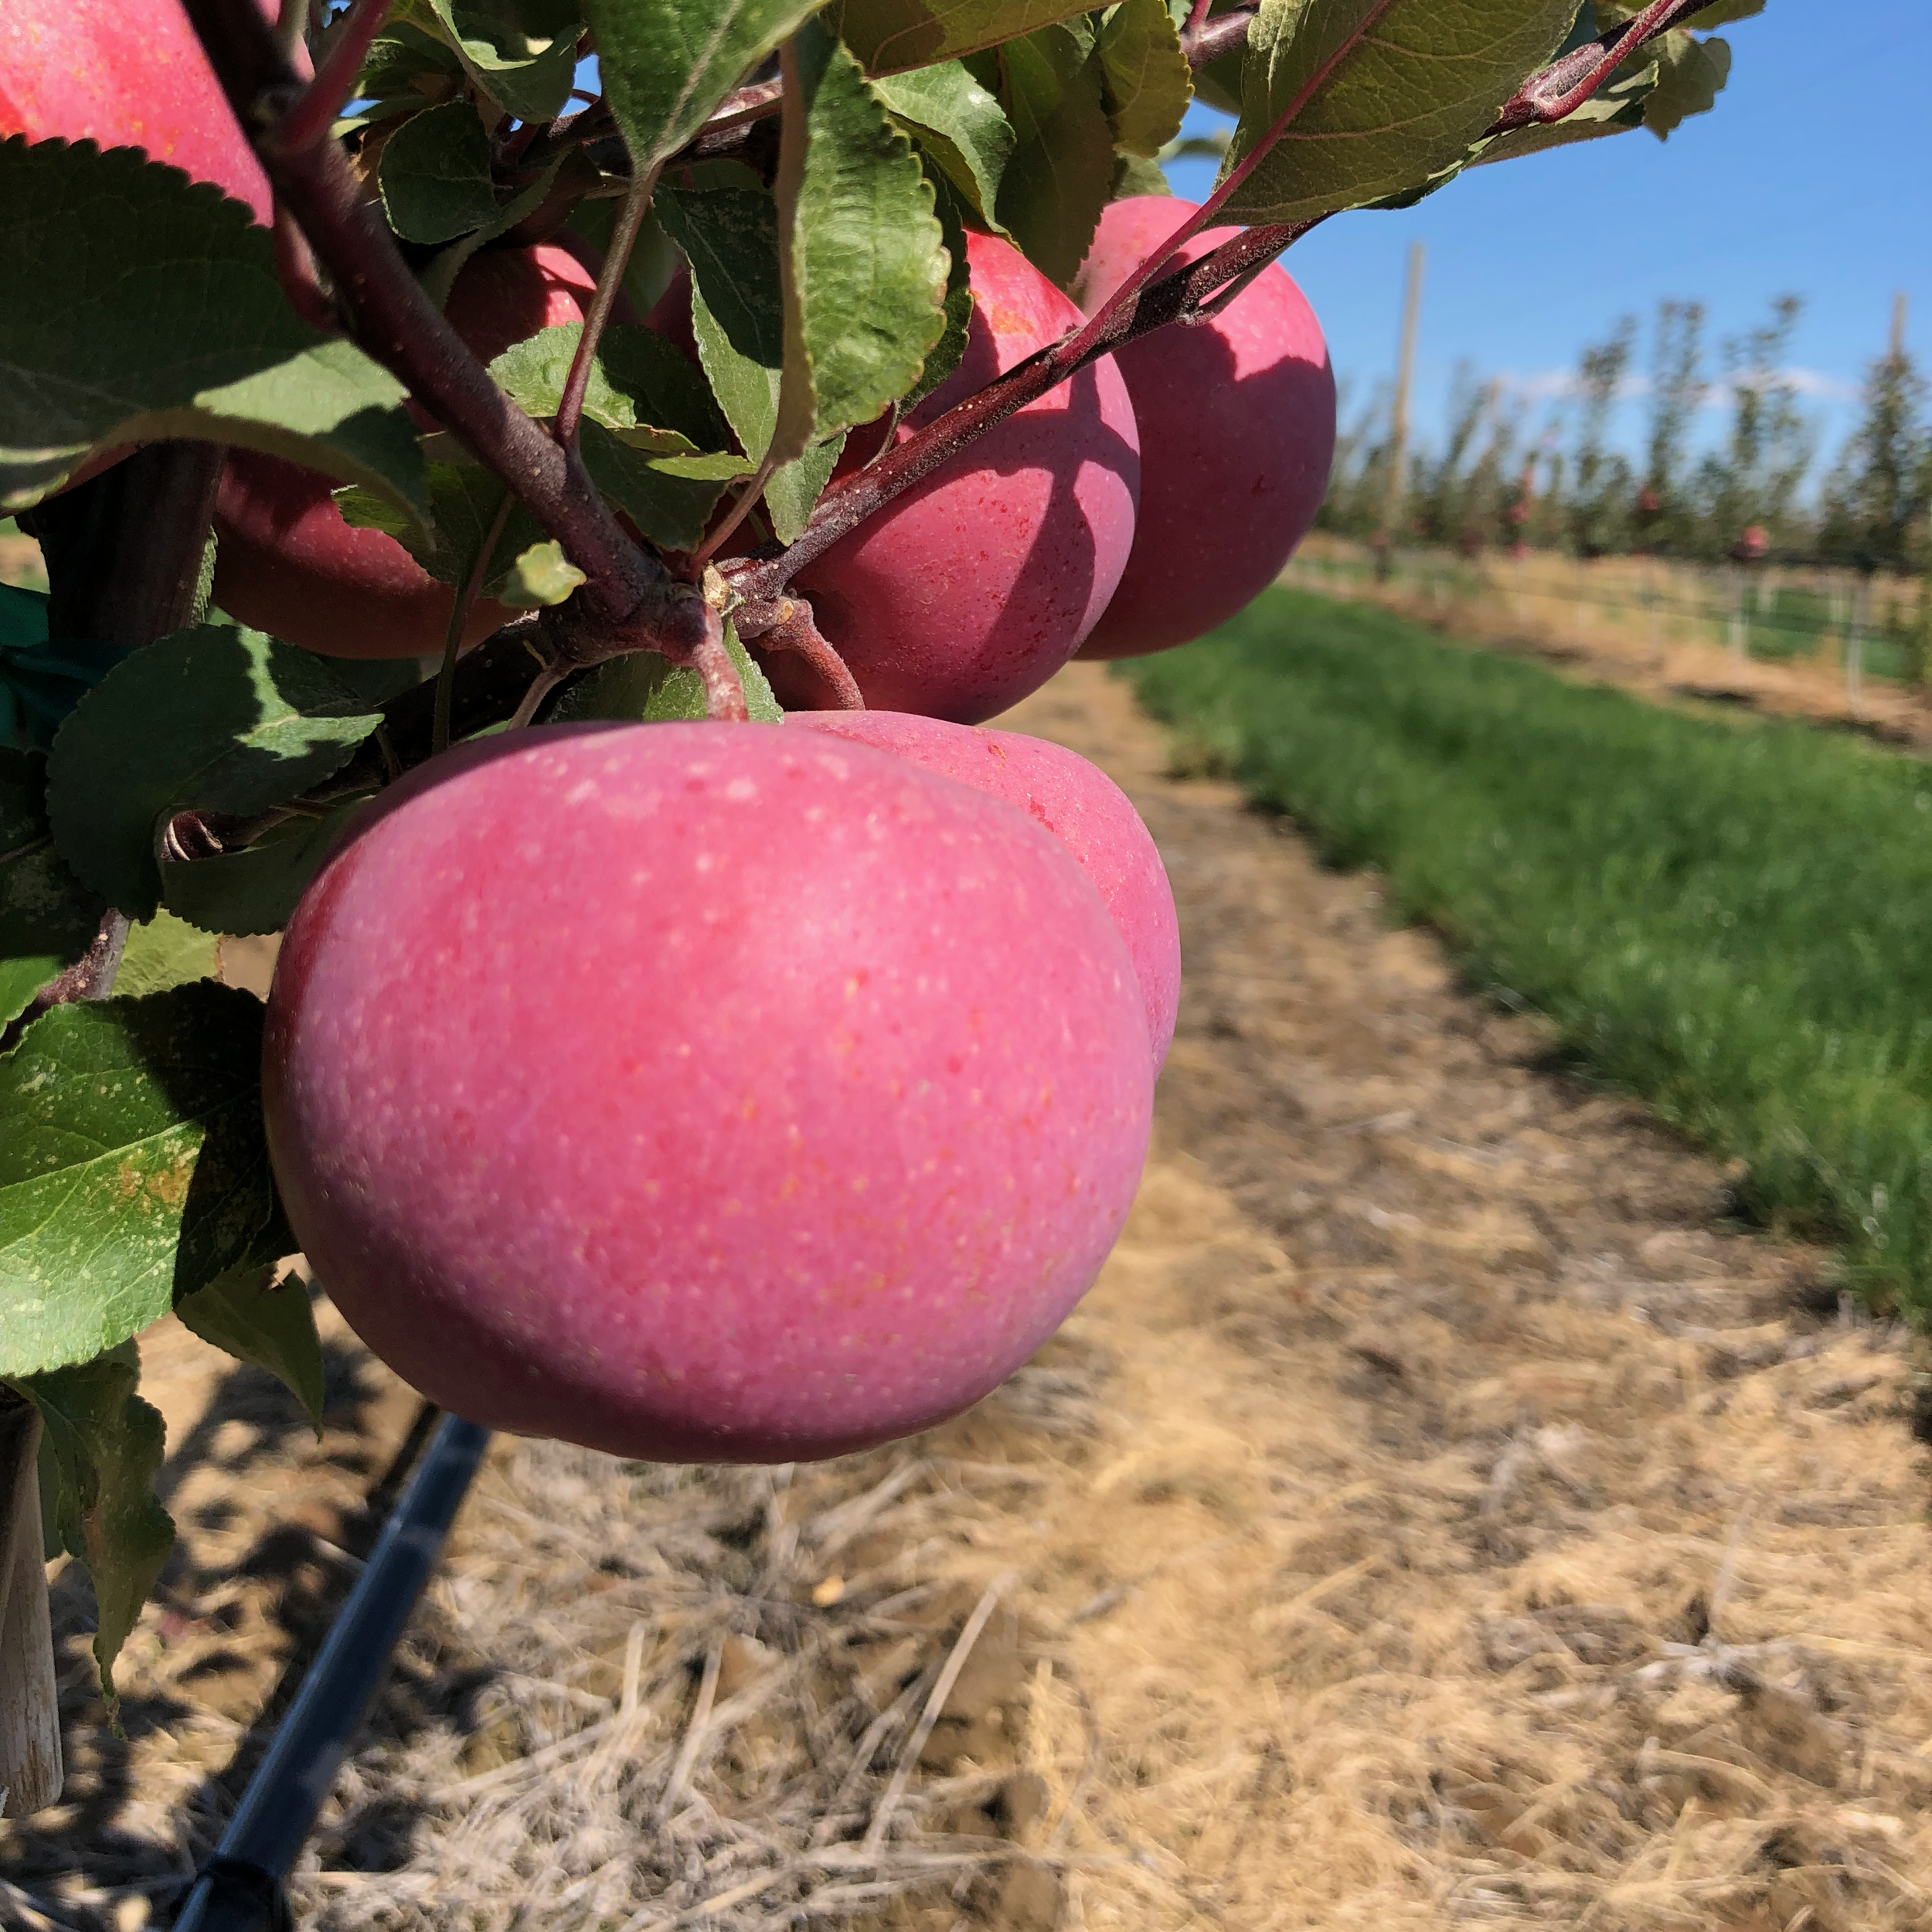 Red Flesh - Originating in Kazakhstan, this sharp apple with very unique red flesh that, when crushed, reveals a beautiful pink juice. Its flavor is tart and reminiscent of red berries. It blends well with lower acid apples or can be made into an excellent single varietal cider.